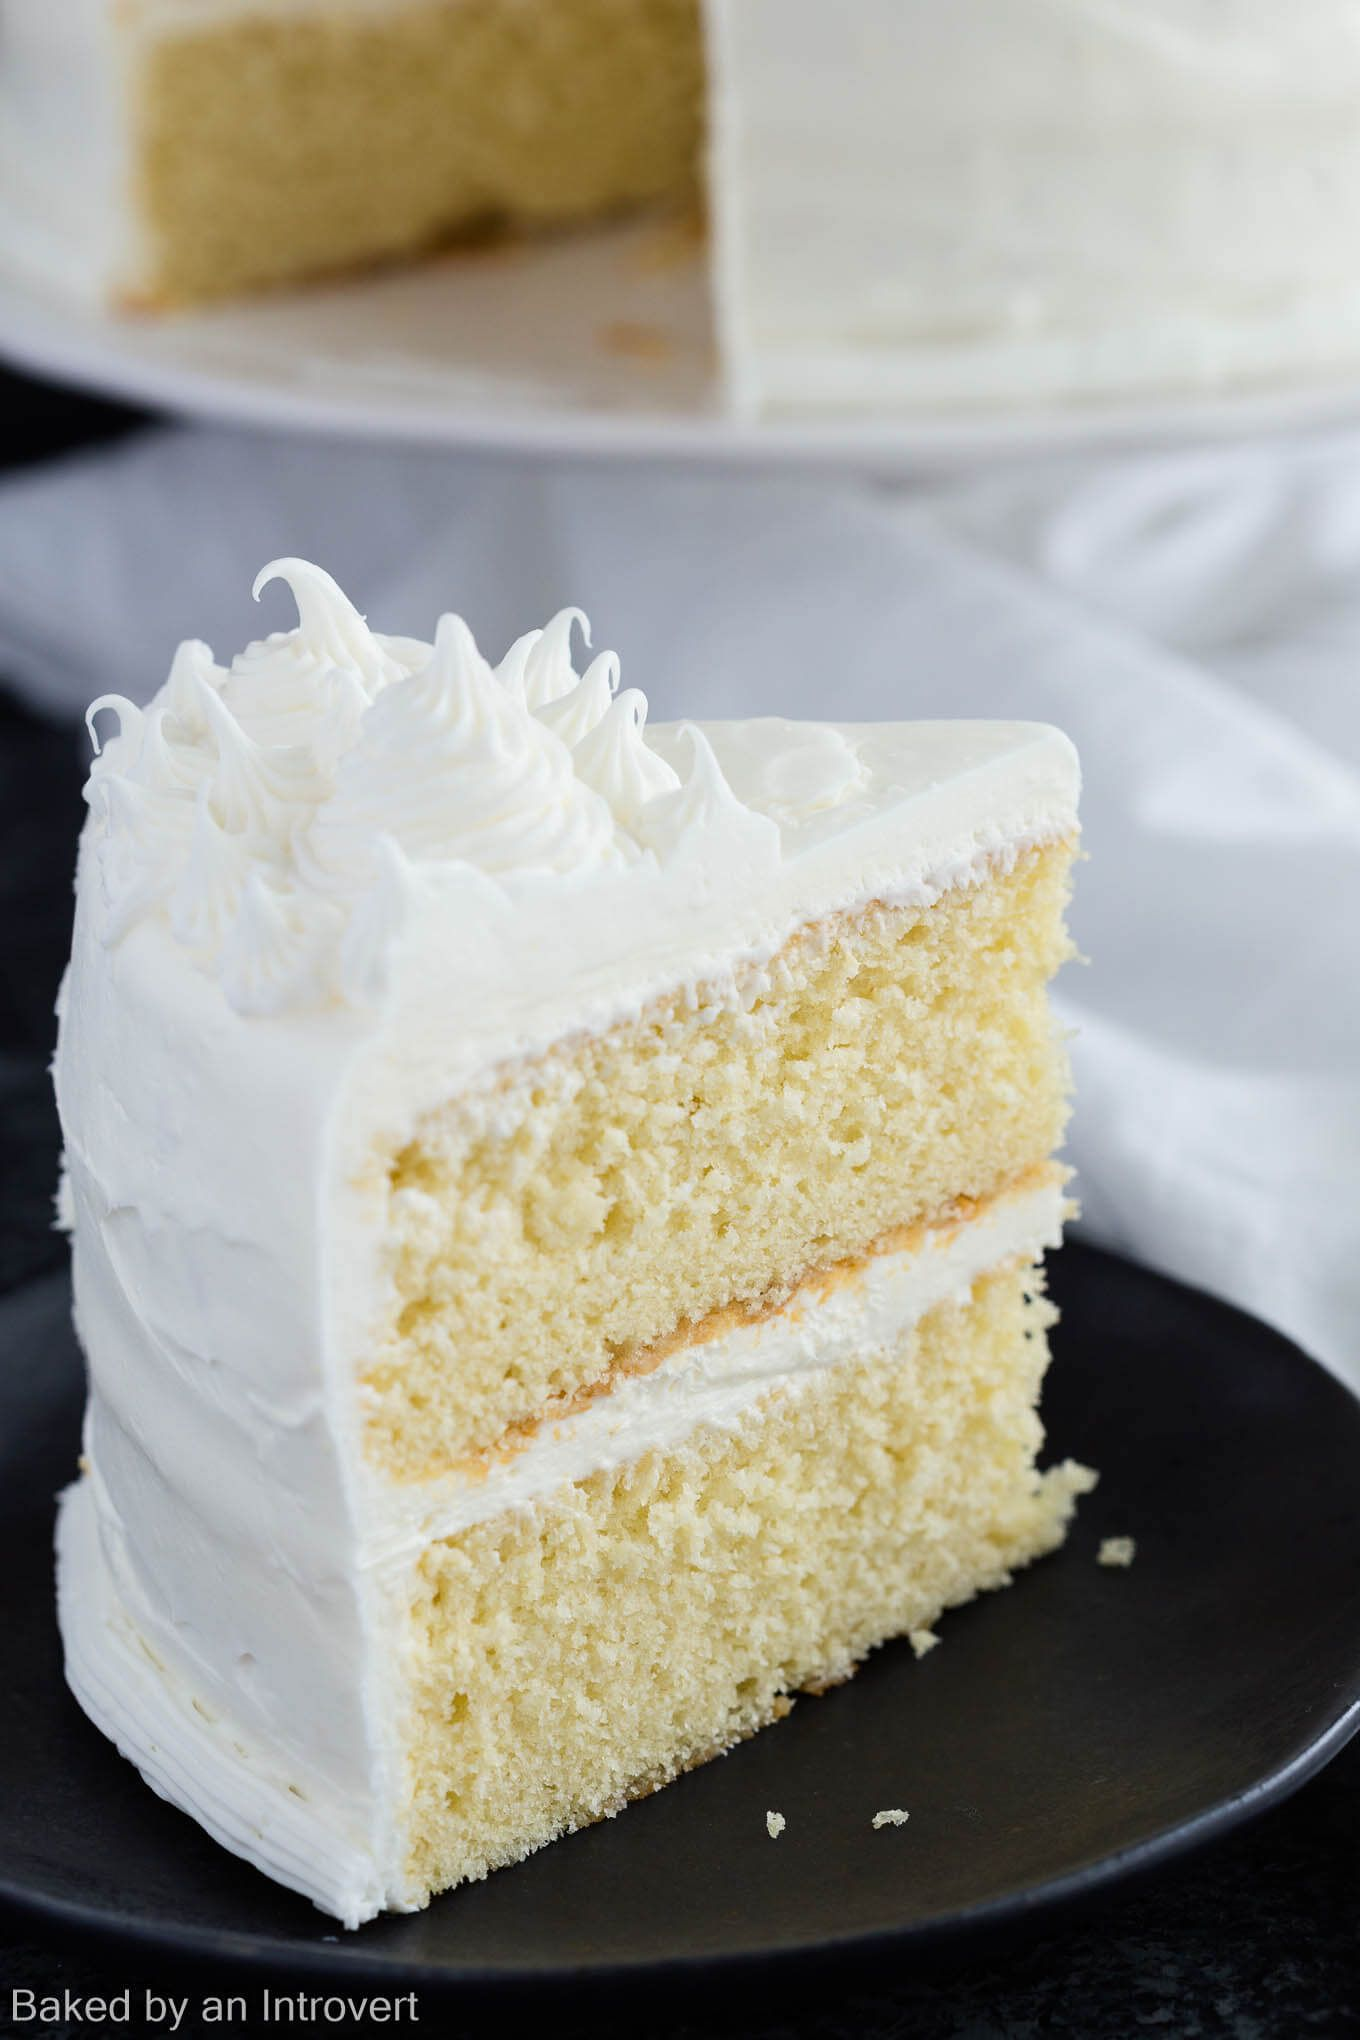 This Made From Scratch Basic Vanilla Cake Recipe Is A One That Must Be Added To Your Repertoire Its Light Tender And Full Of Vanilla Flavor